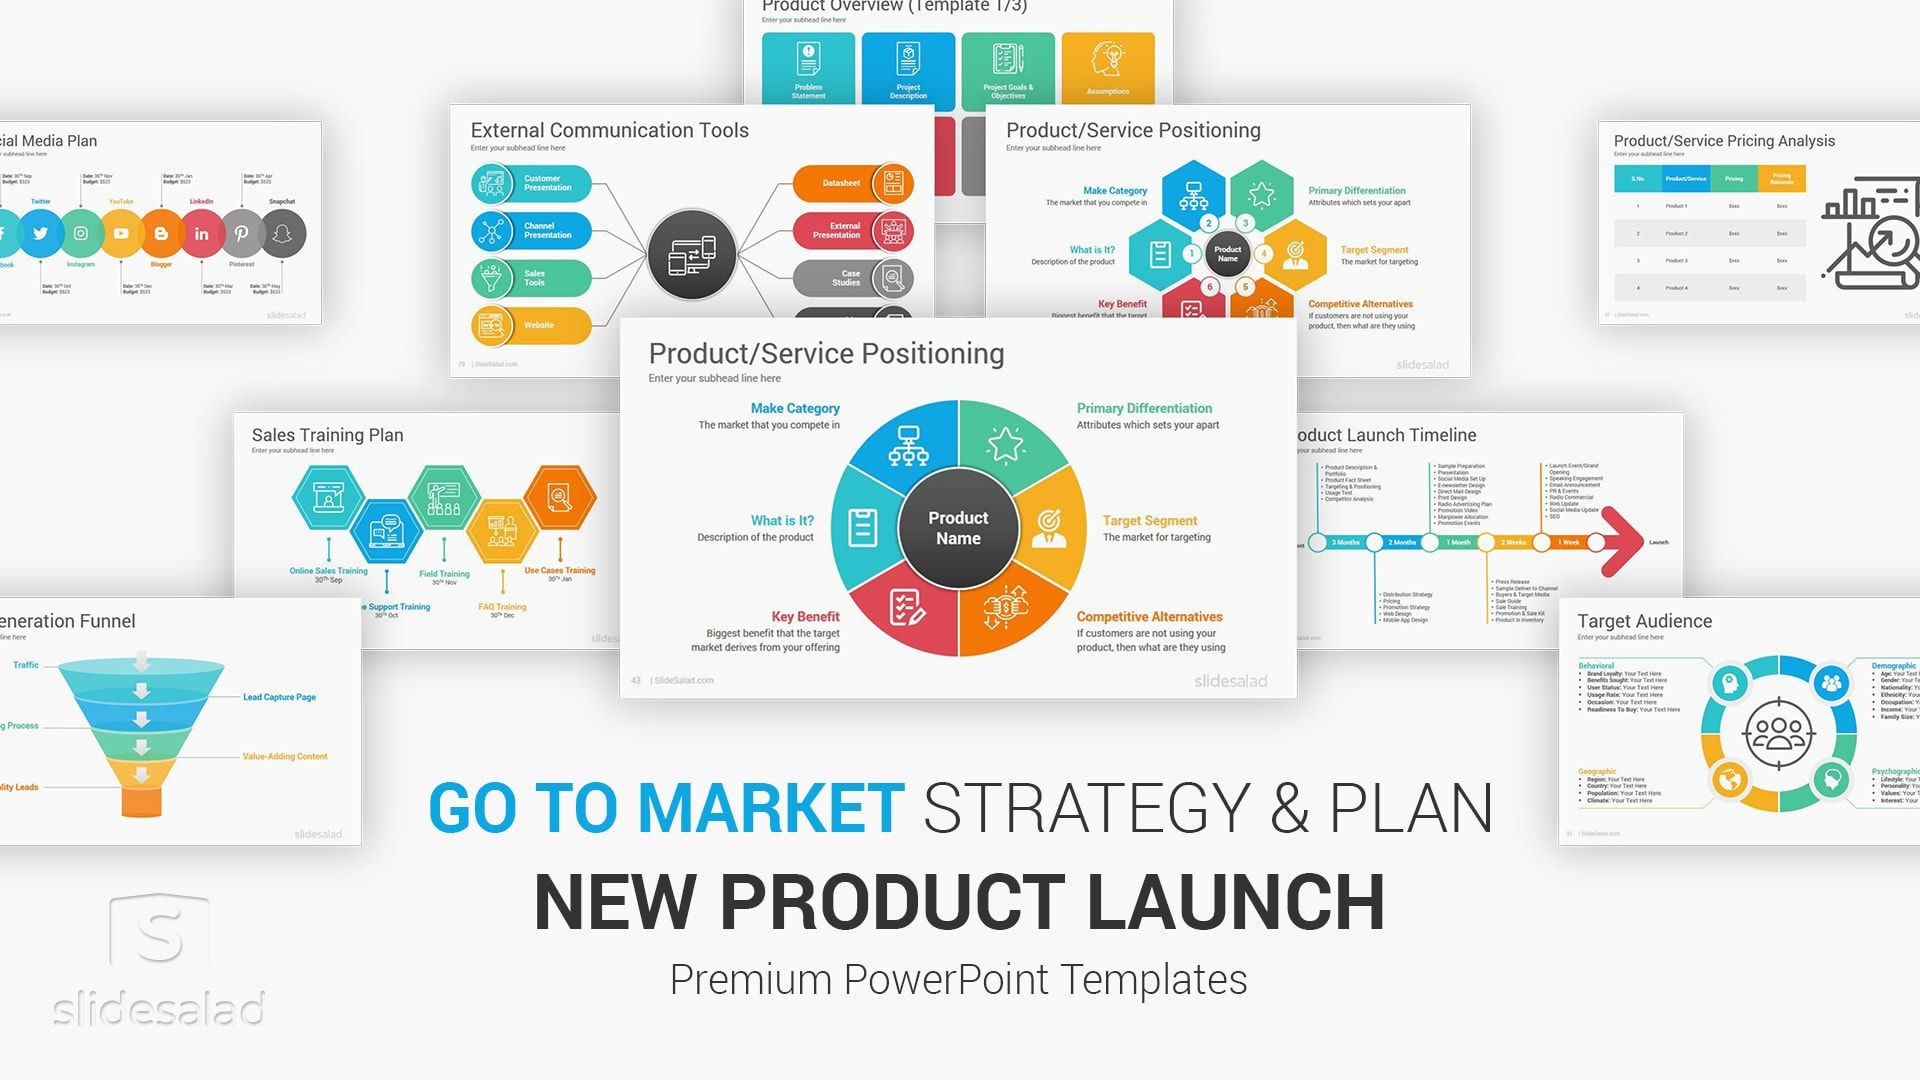 004 Remarkable Free Product Launch Plan Template Ppt Sample 1920